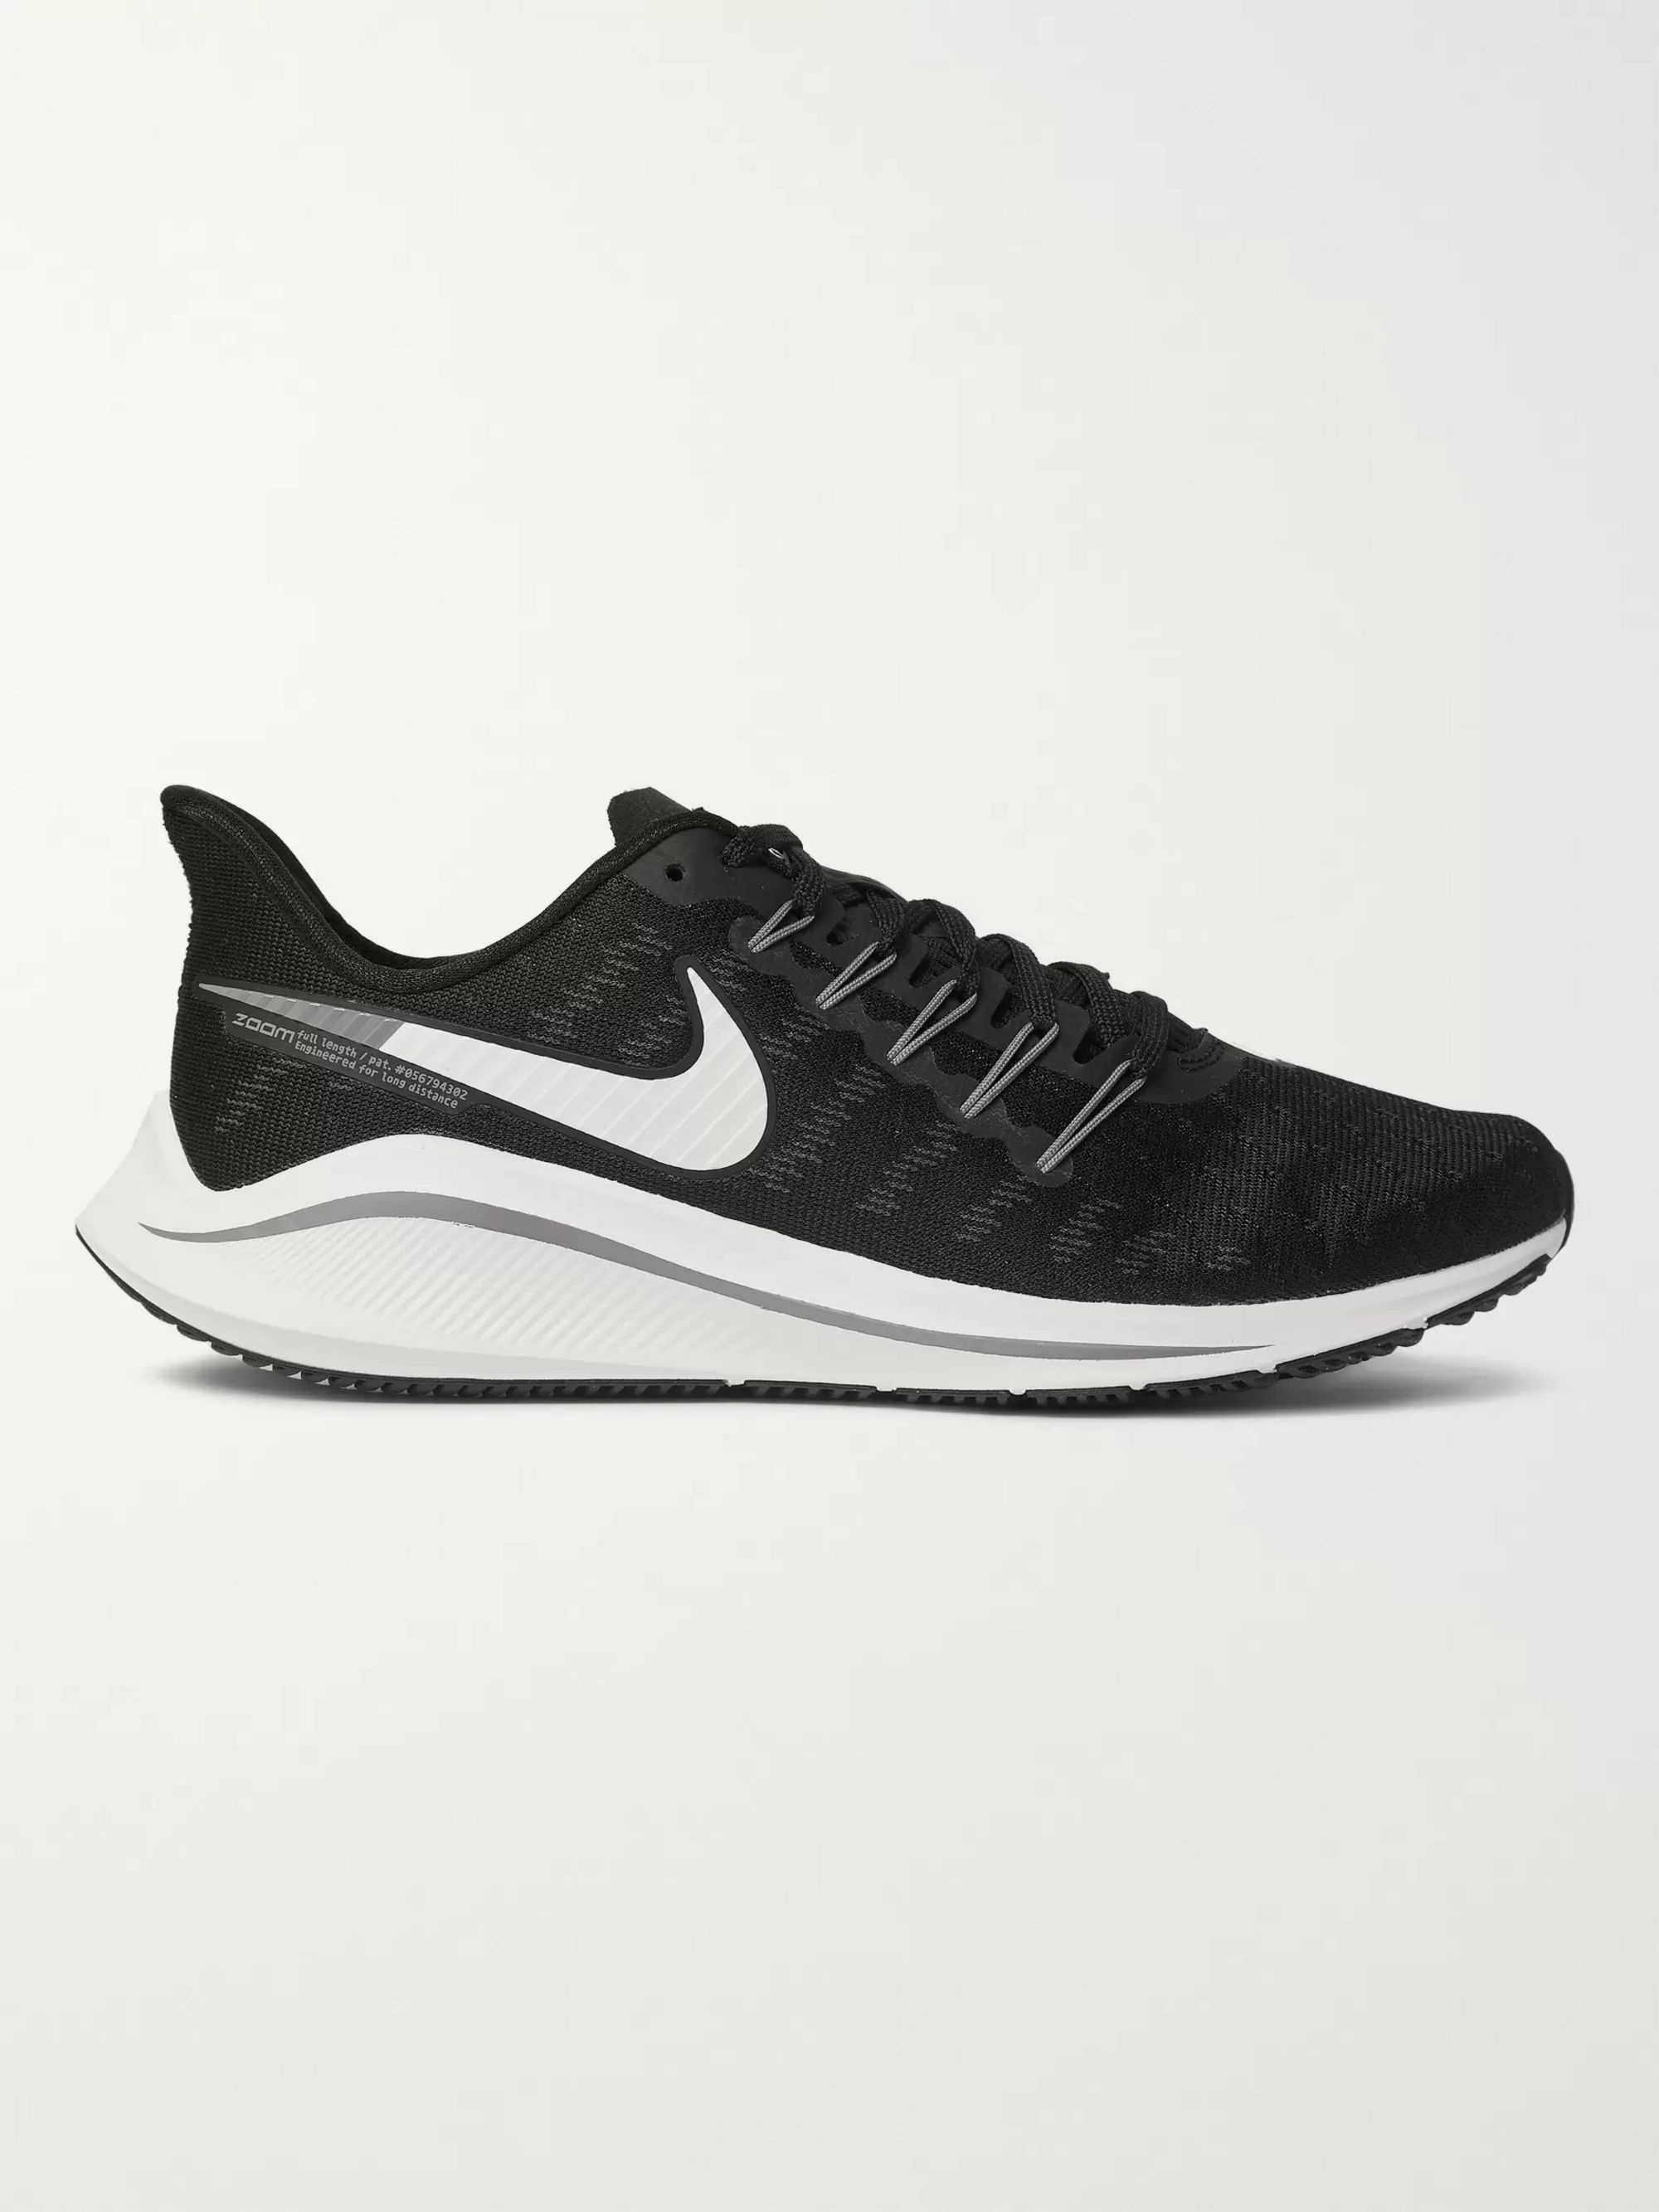 Nike Men's Air Zoom Vomero 13 Running Shoes